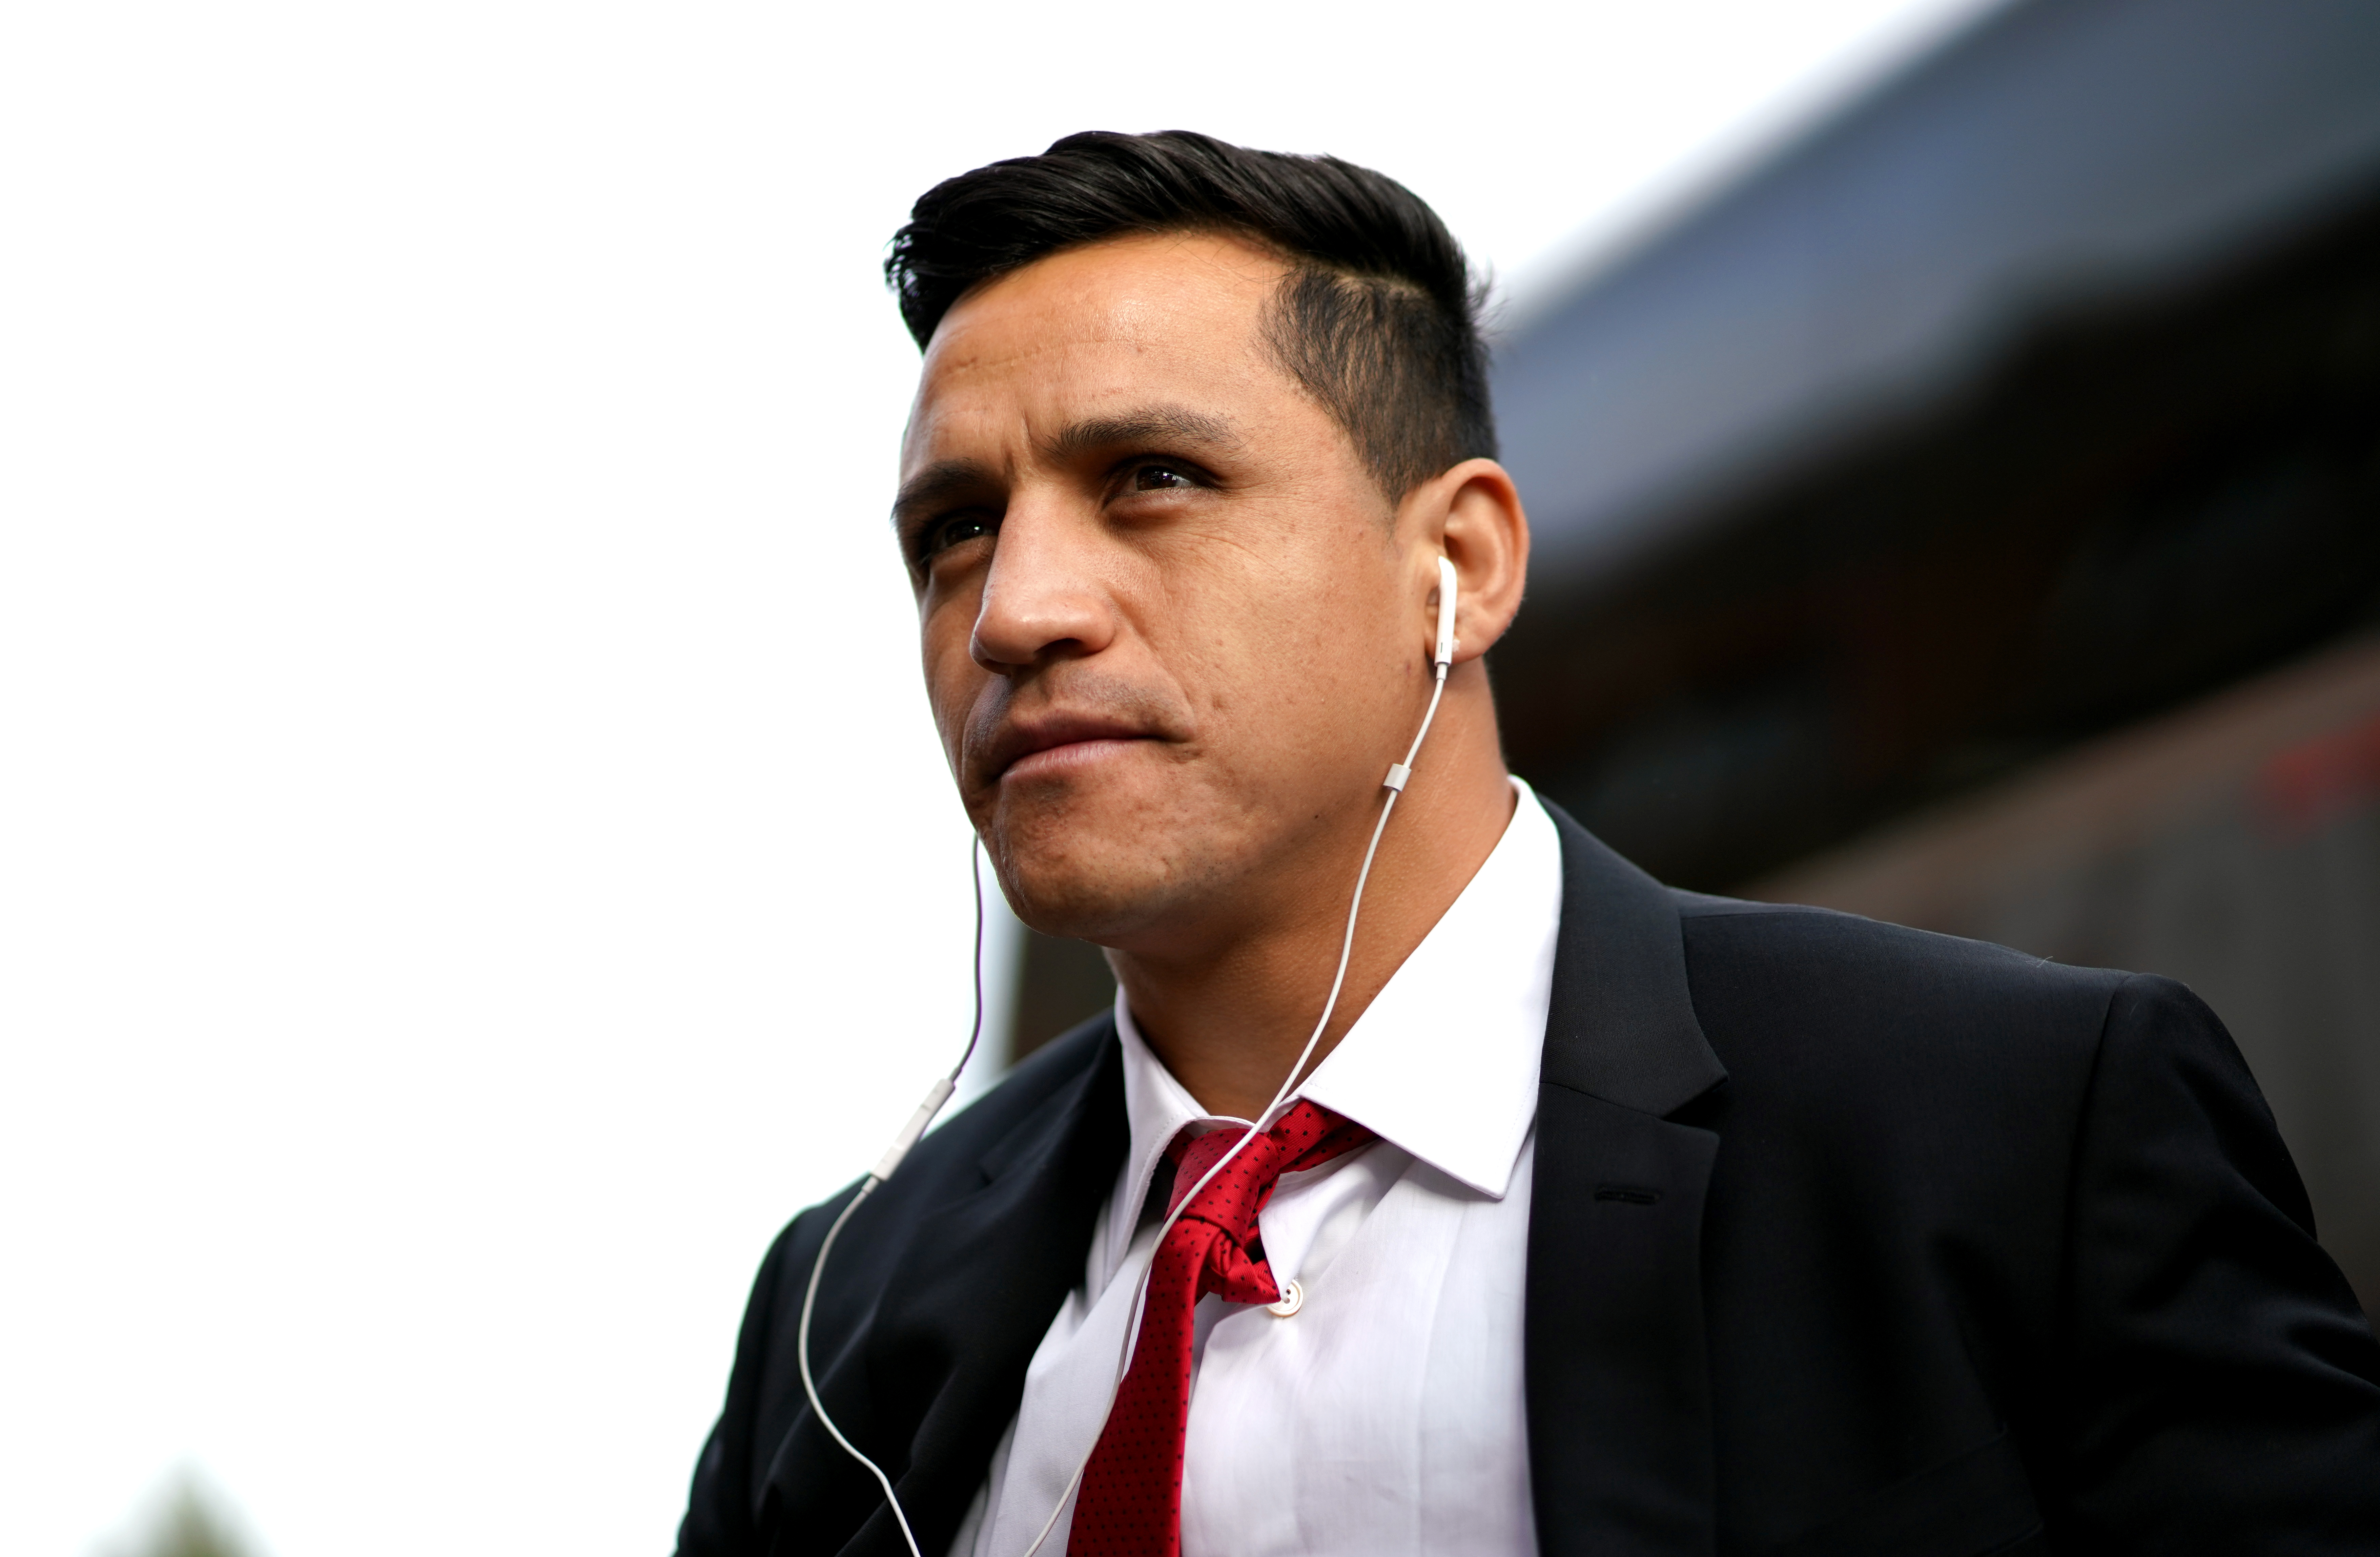 Sánchez Gets Injured After Running Into A Linesman During PSG Match  - FootyNews.co.uk